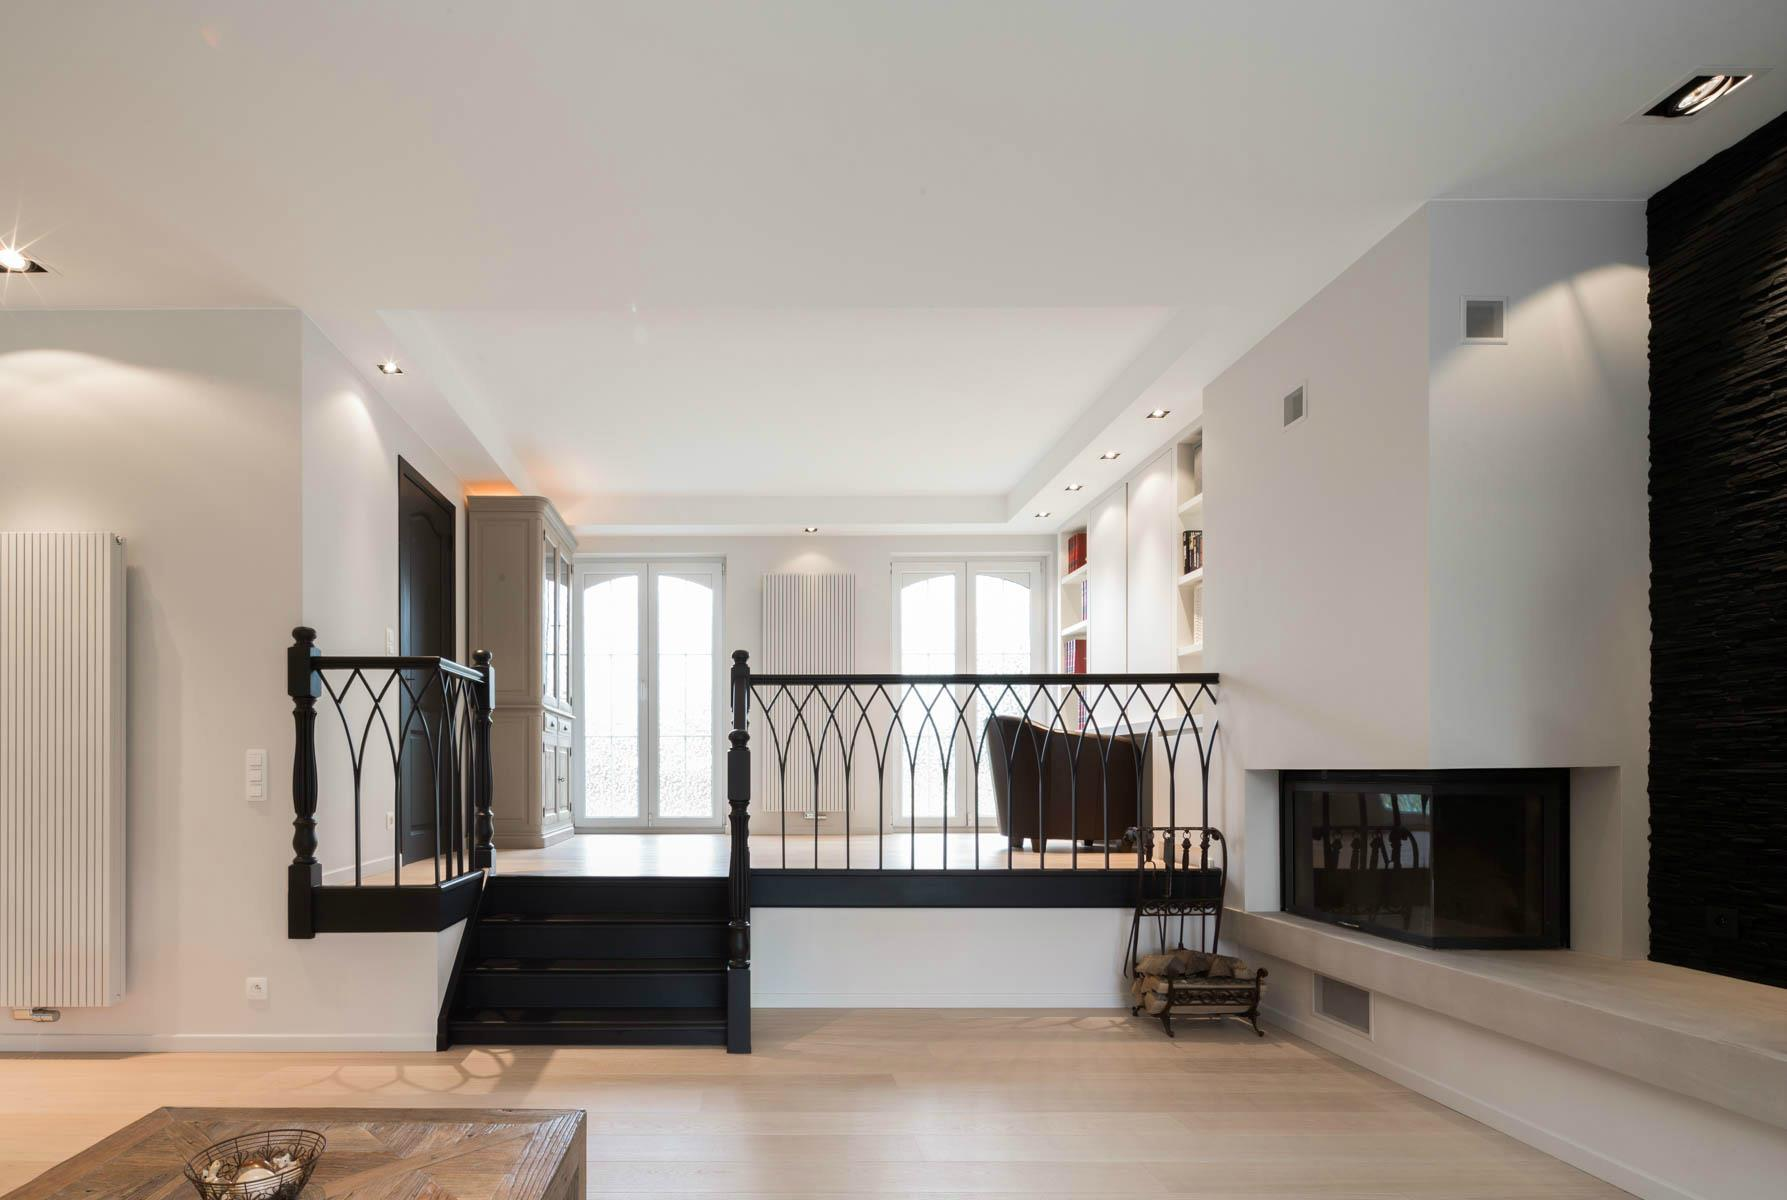 AMENAGEMENT MAISON, ARCHITECTE RENOVATION